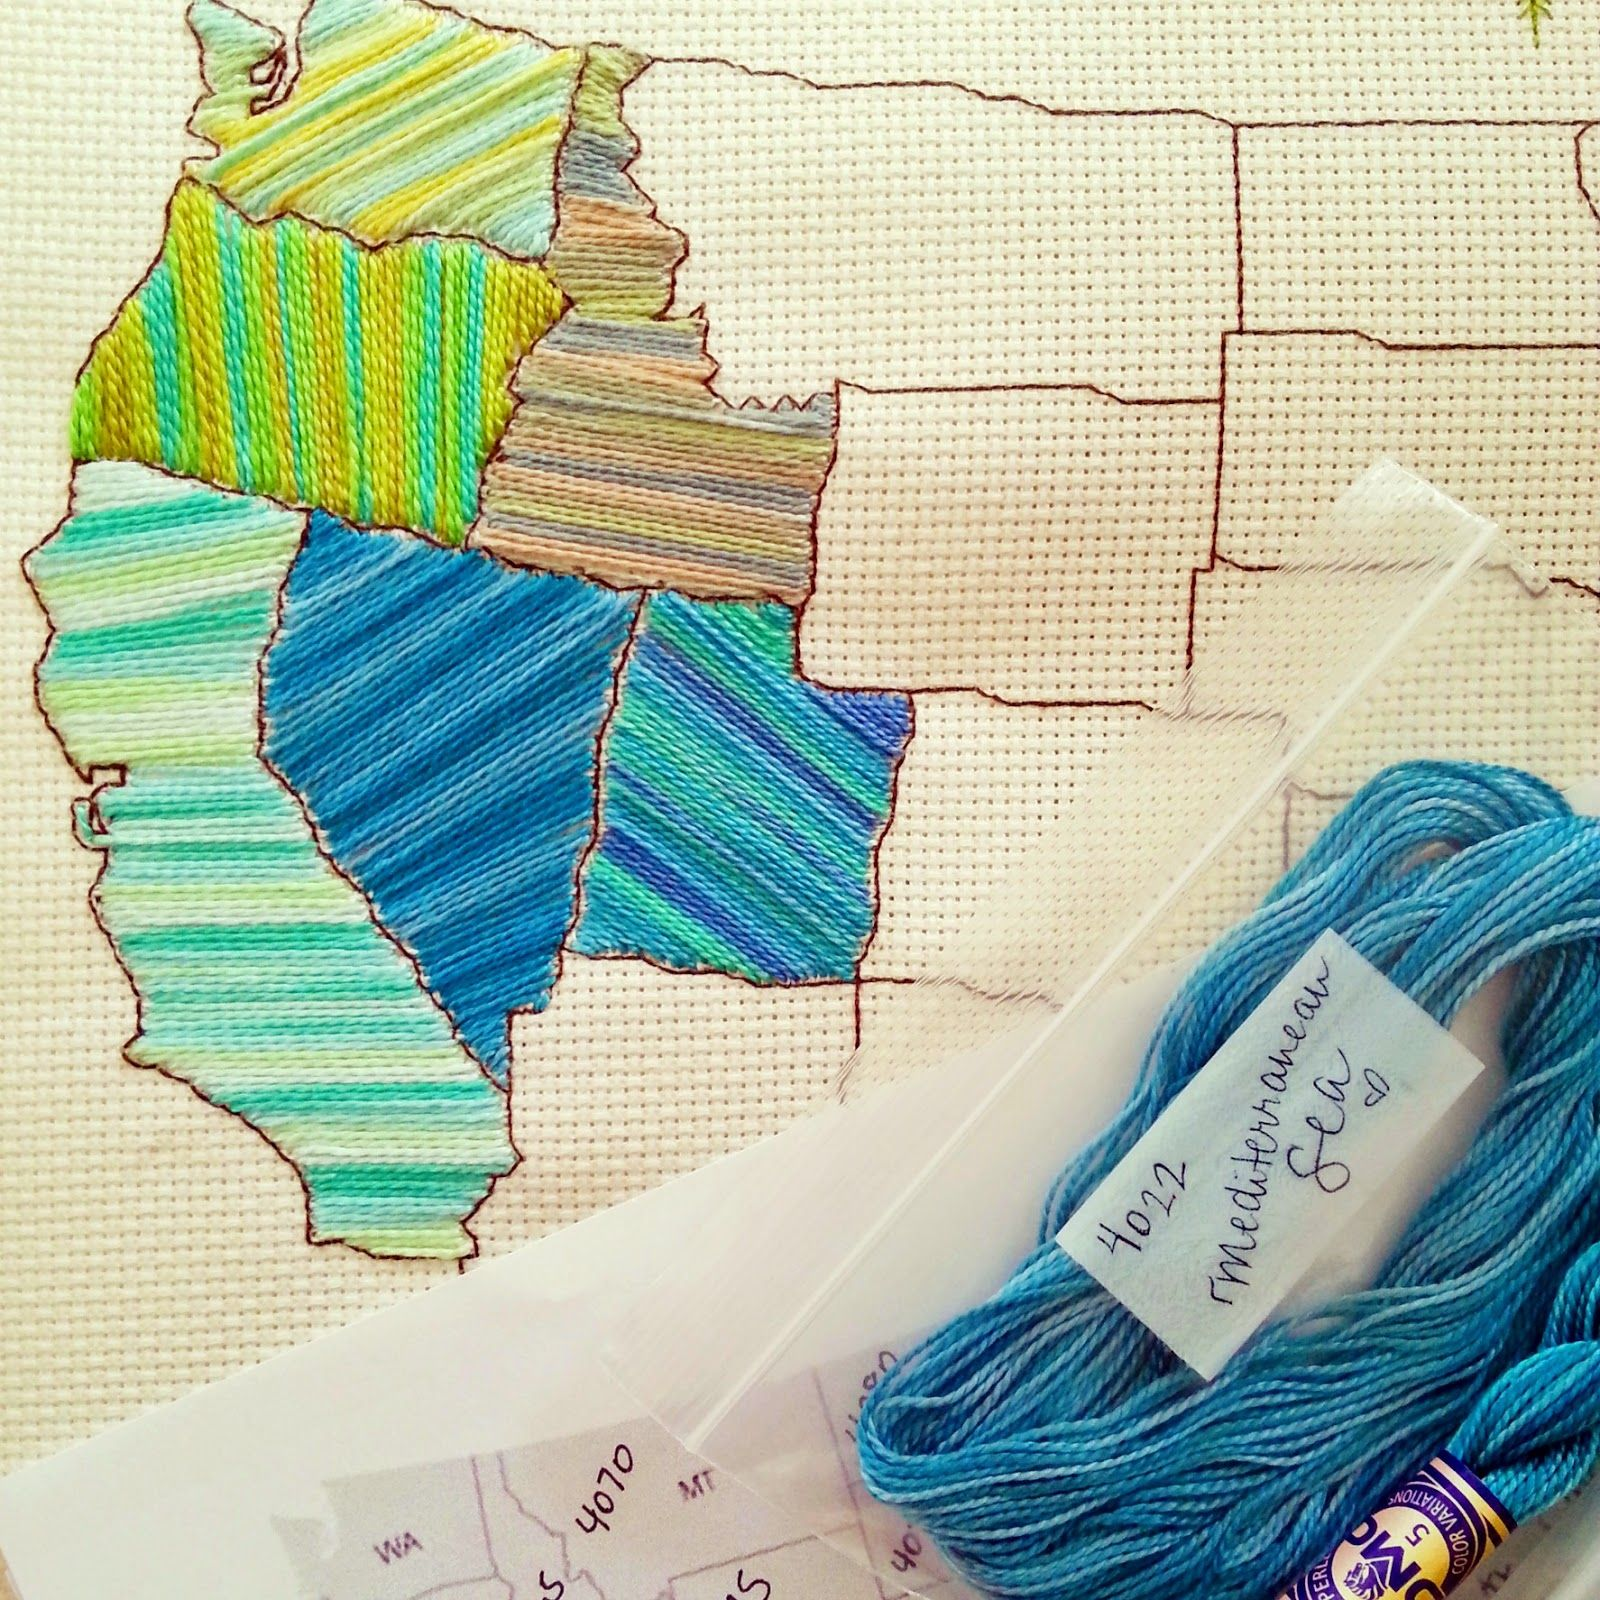 Sew Sewing Cross Stitch Map Us United States Floss Yarn - Map ideas for the us